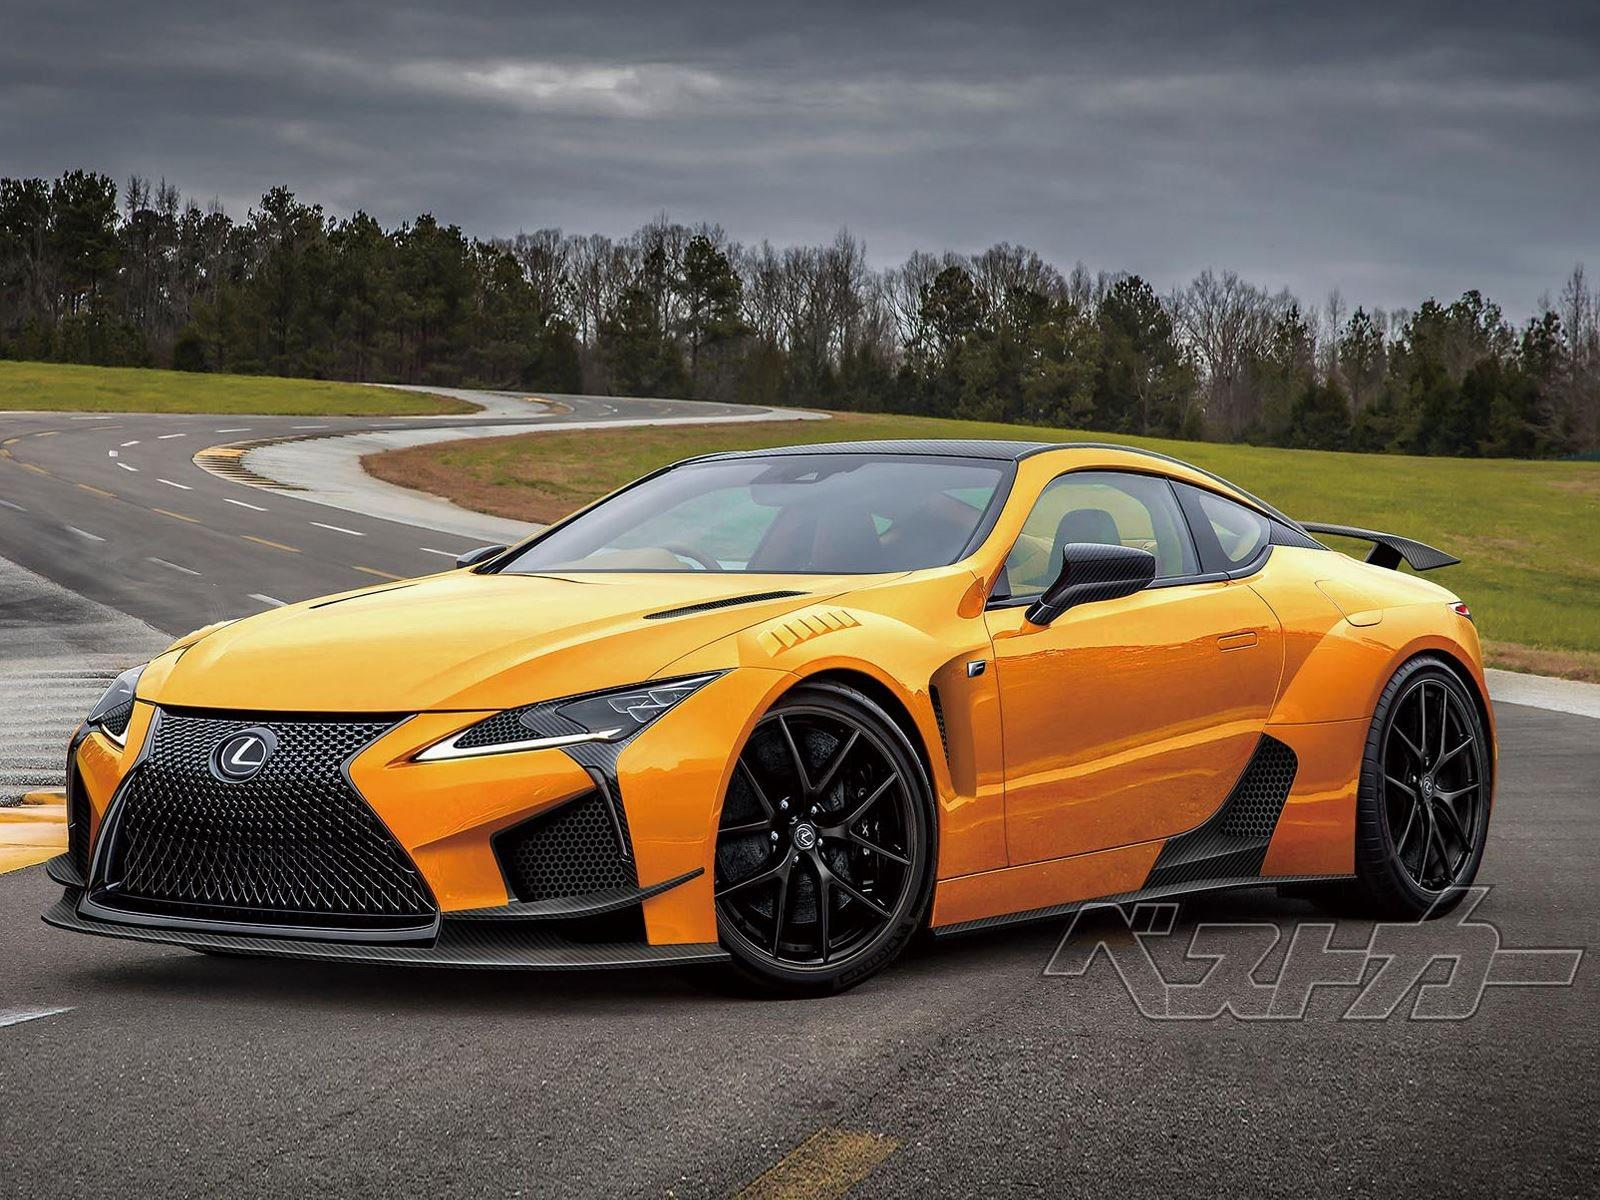 600-HP Lexus LC F Won't Join The Party Until 2022? | CarBuzz